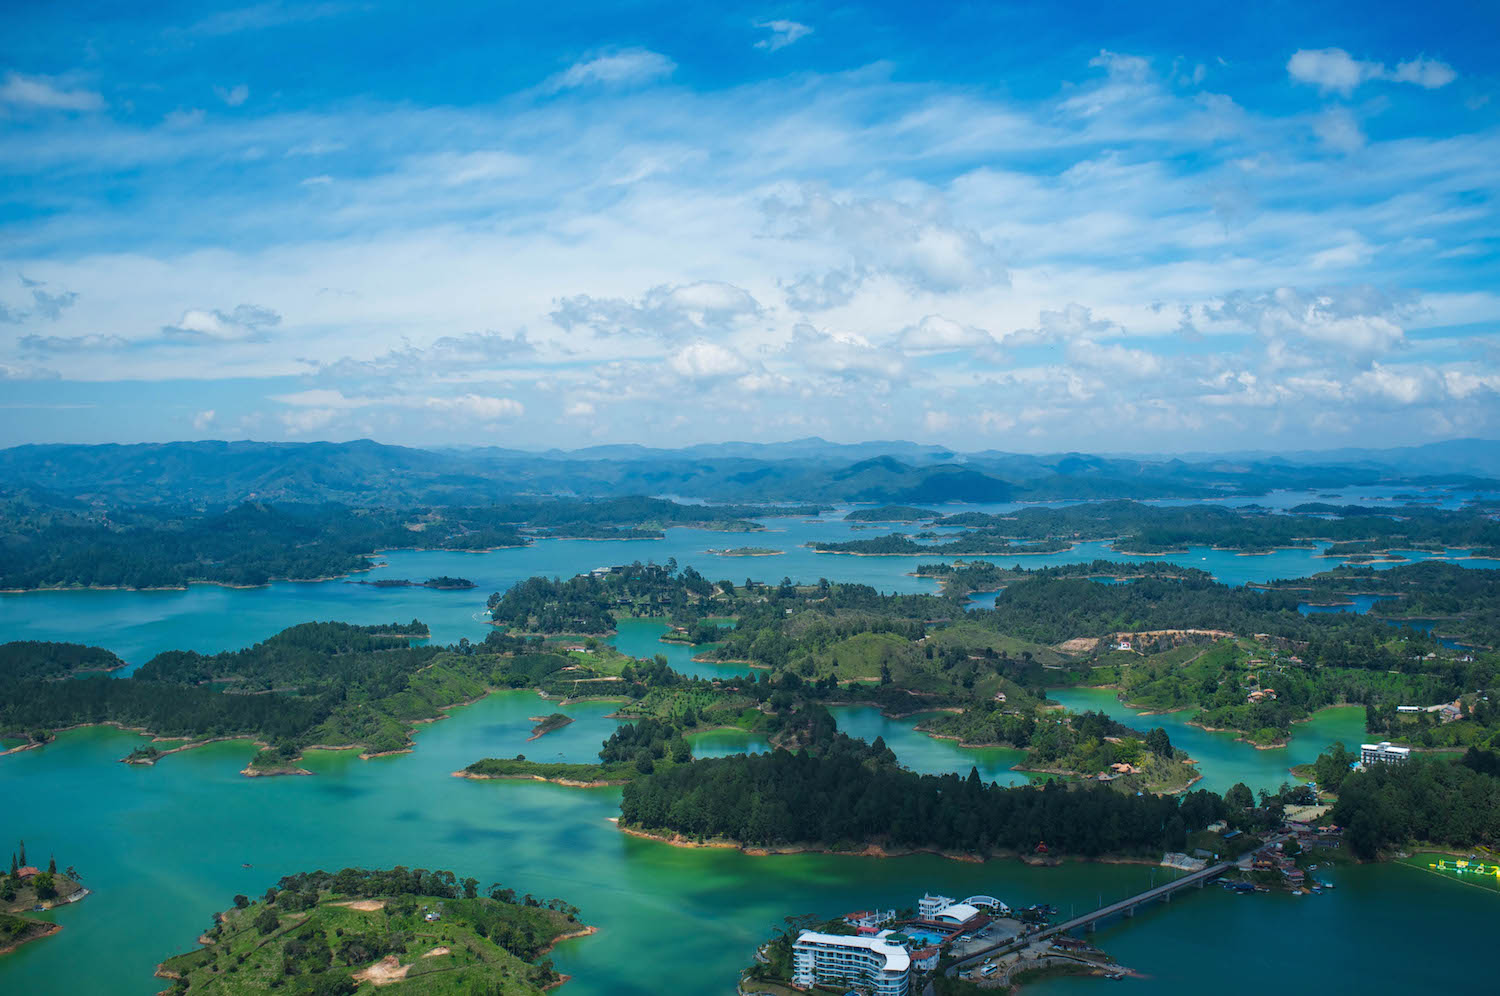 Guatape in Colombia, the view